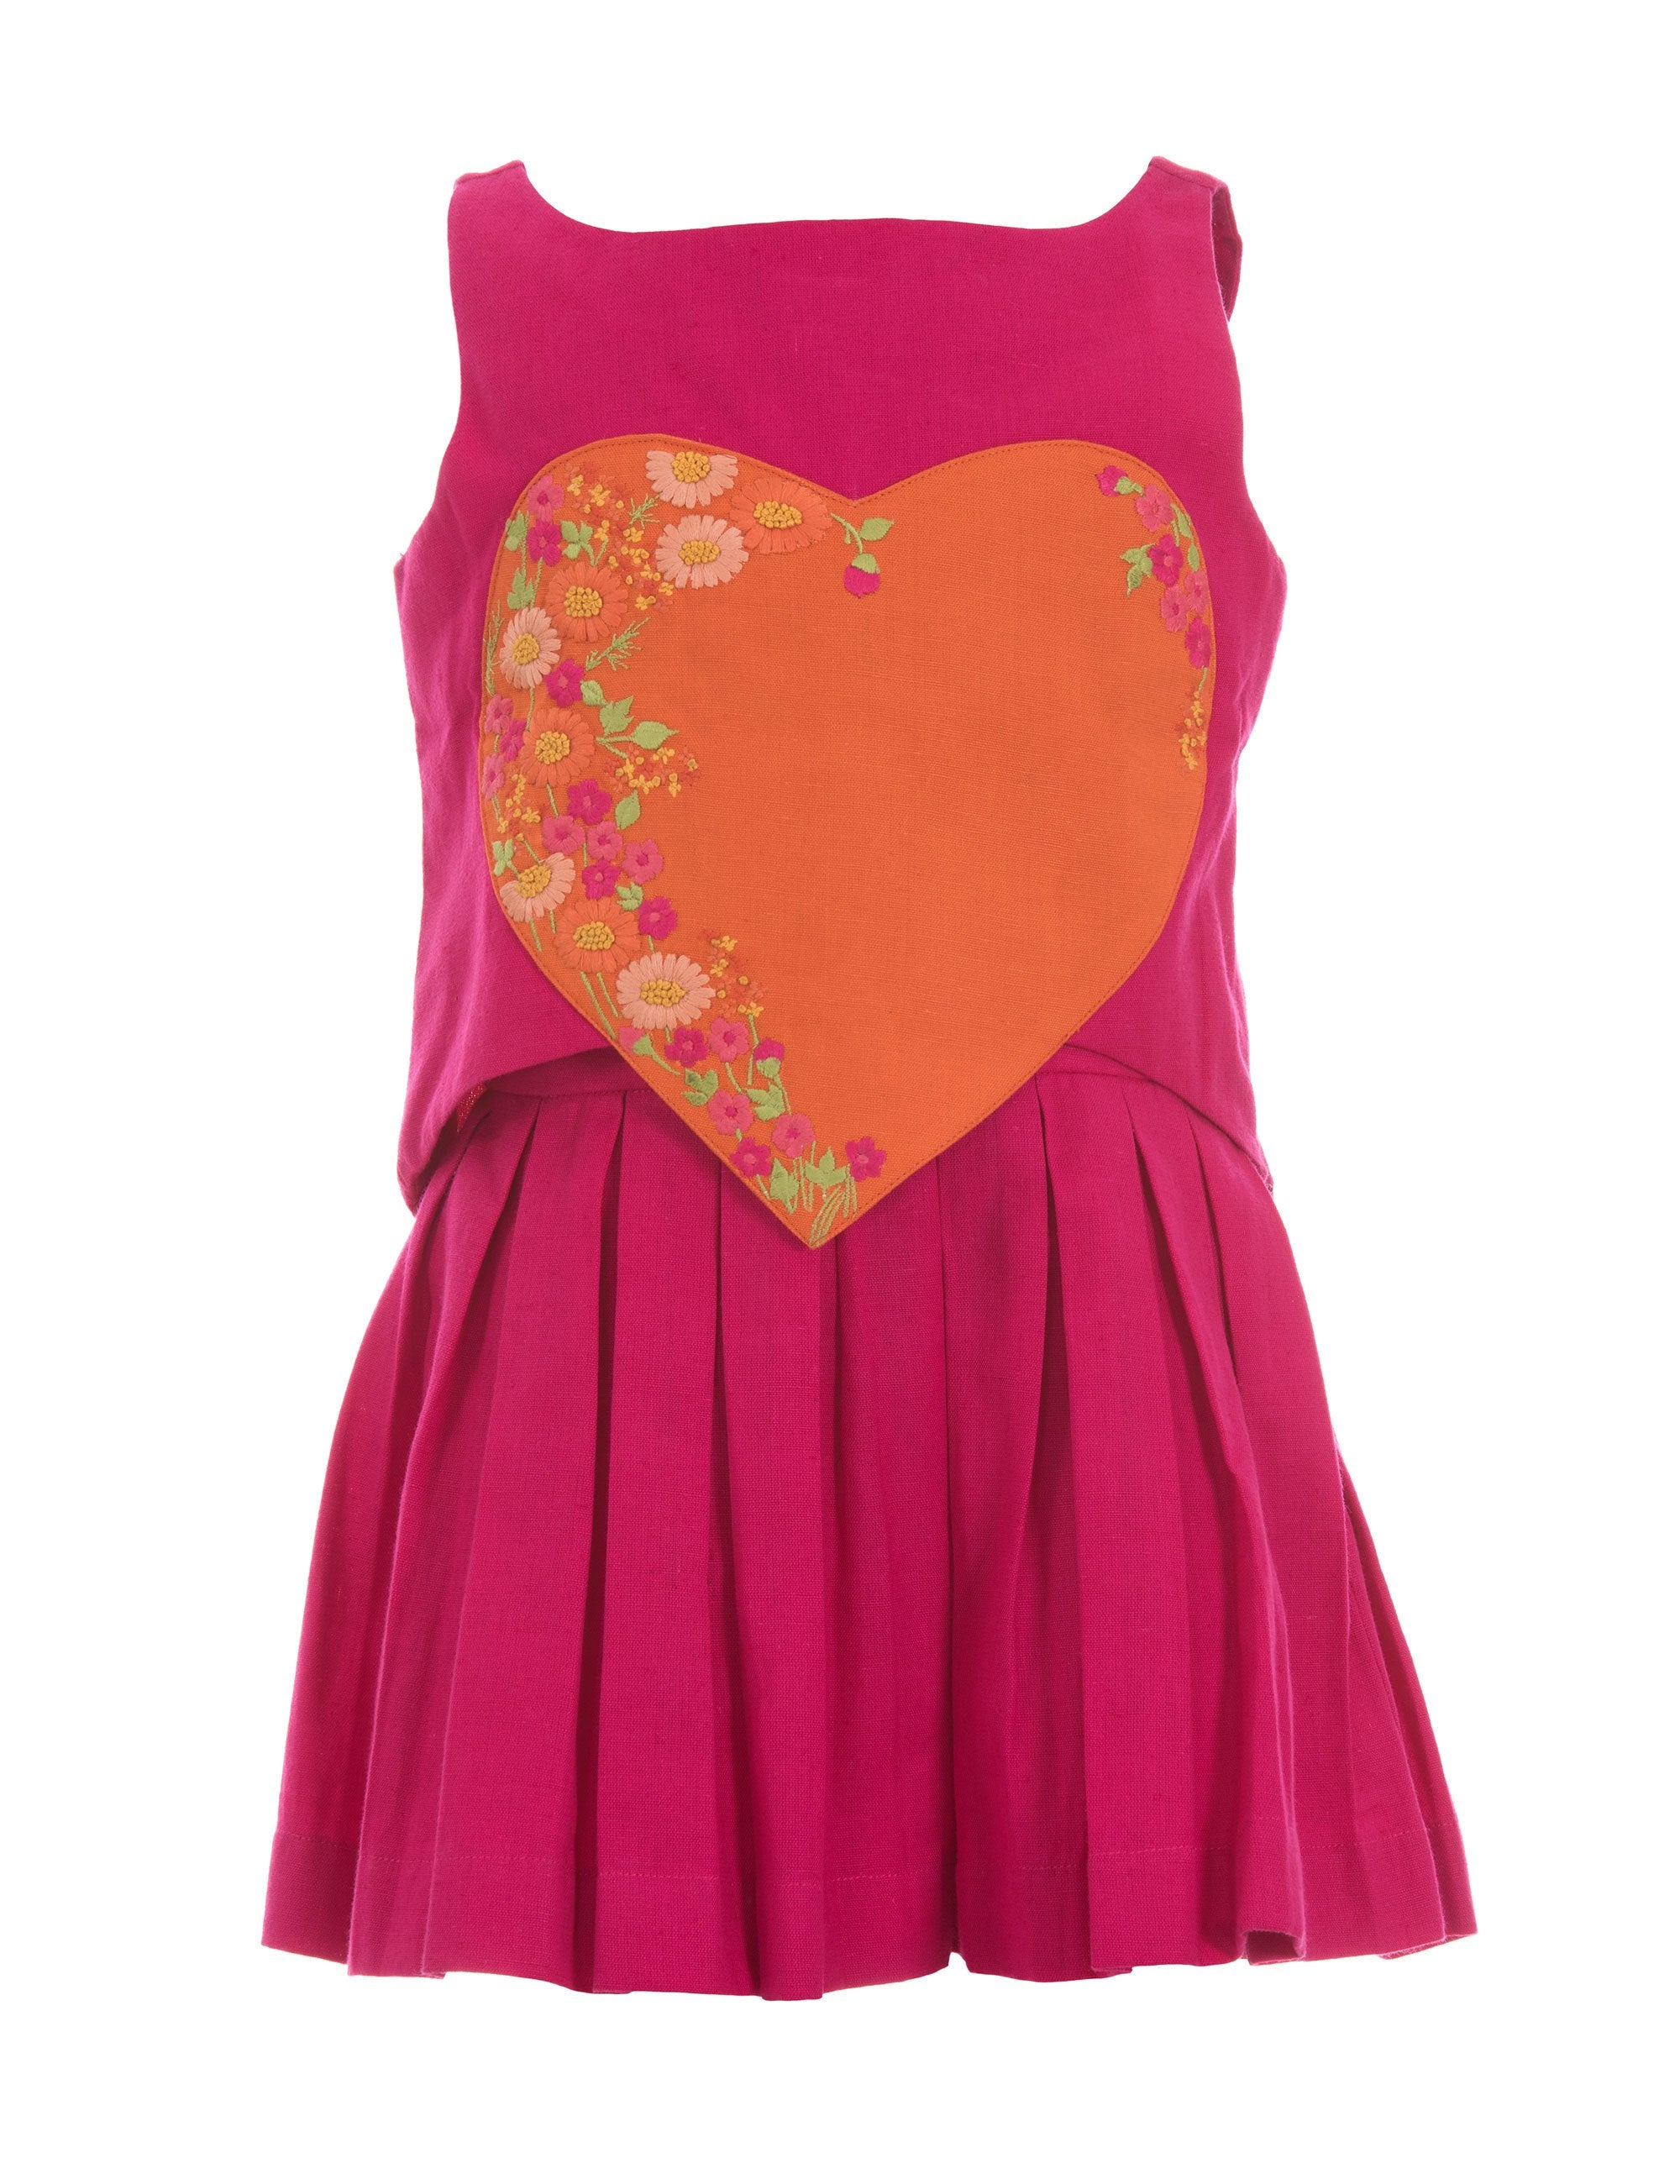 Heart Crop Top with Pleated Skirt in Red for Girls